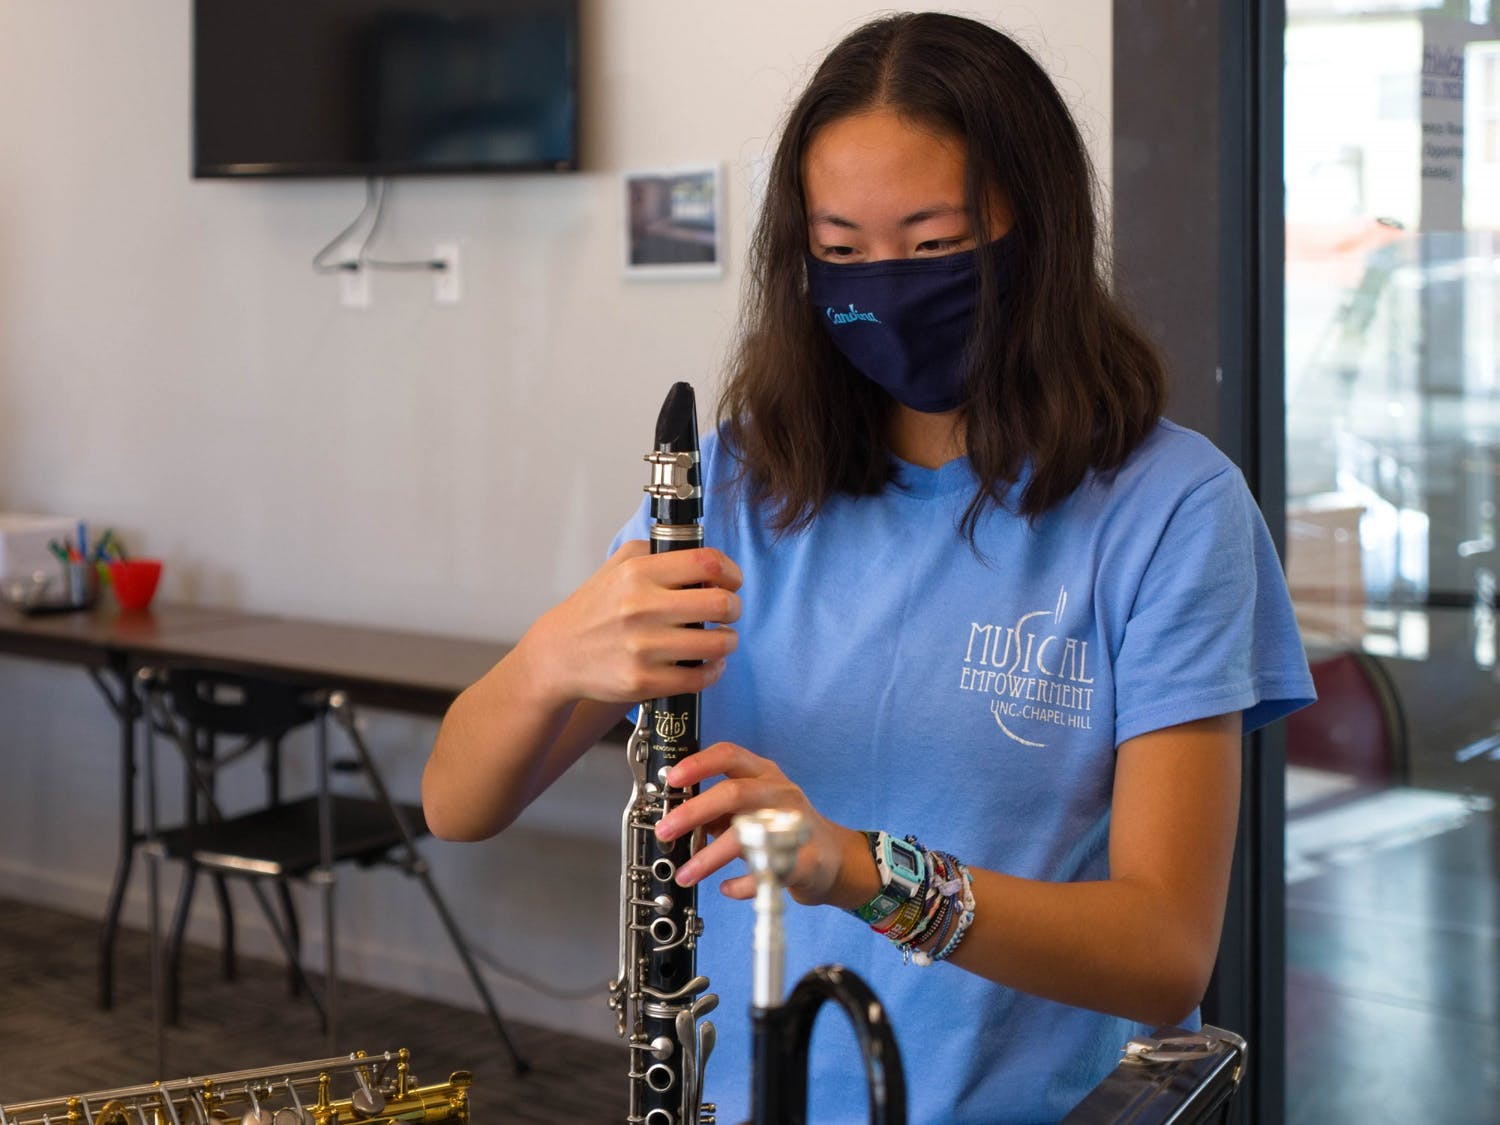 Sophomore Jessica Wu (Biomedical Engineering), a volunteer at Musical Empowerment, assembles a clarinet in the YouthWorx conference room on Wednesday, Dec. 9, 2020.